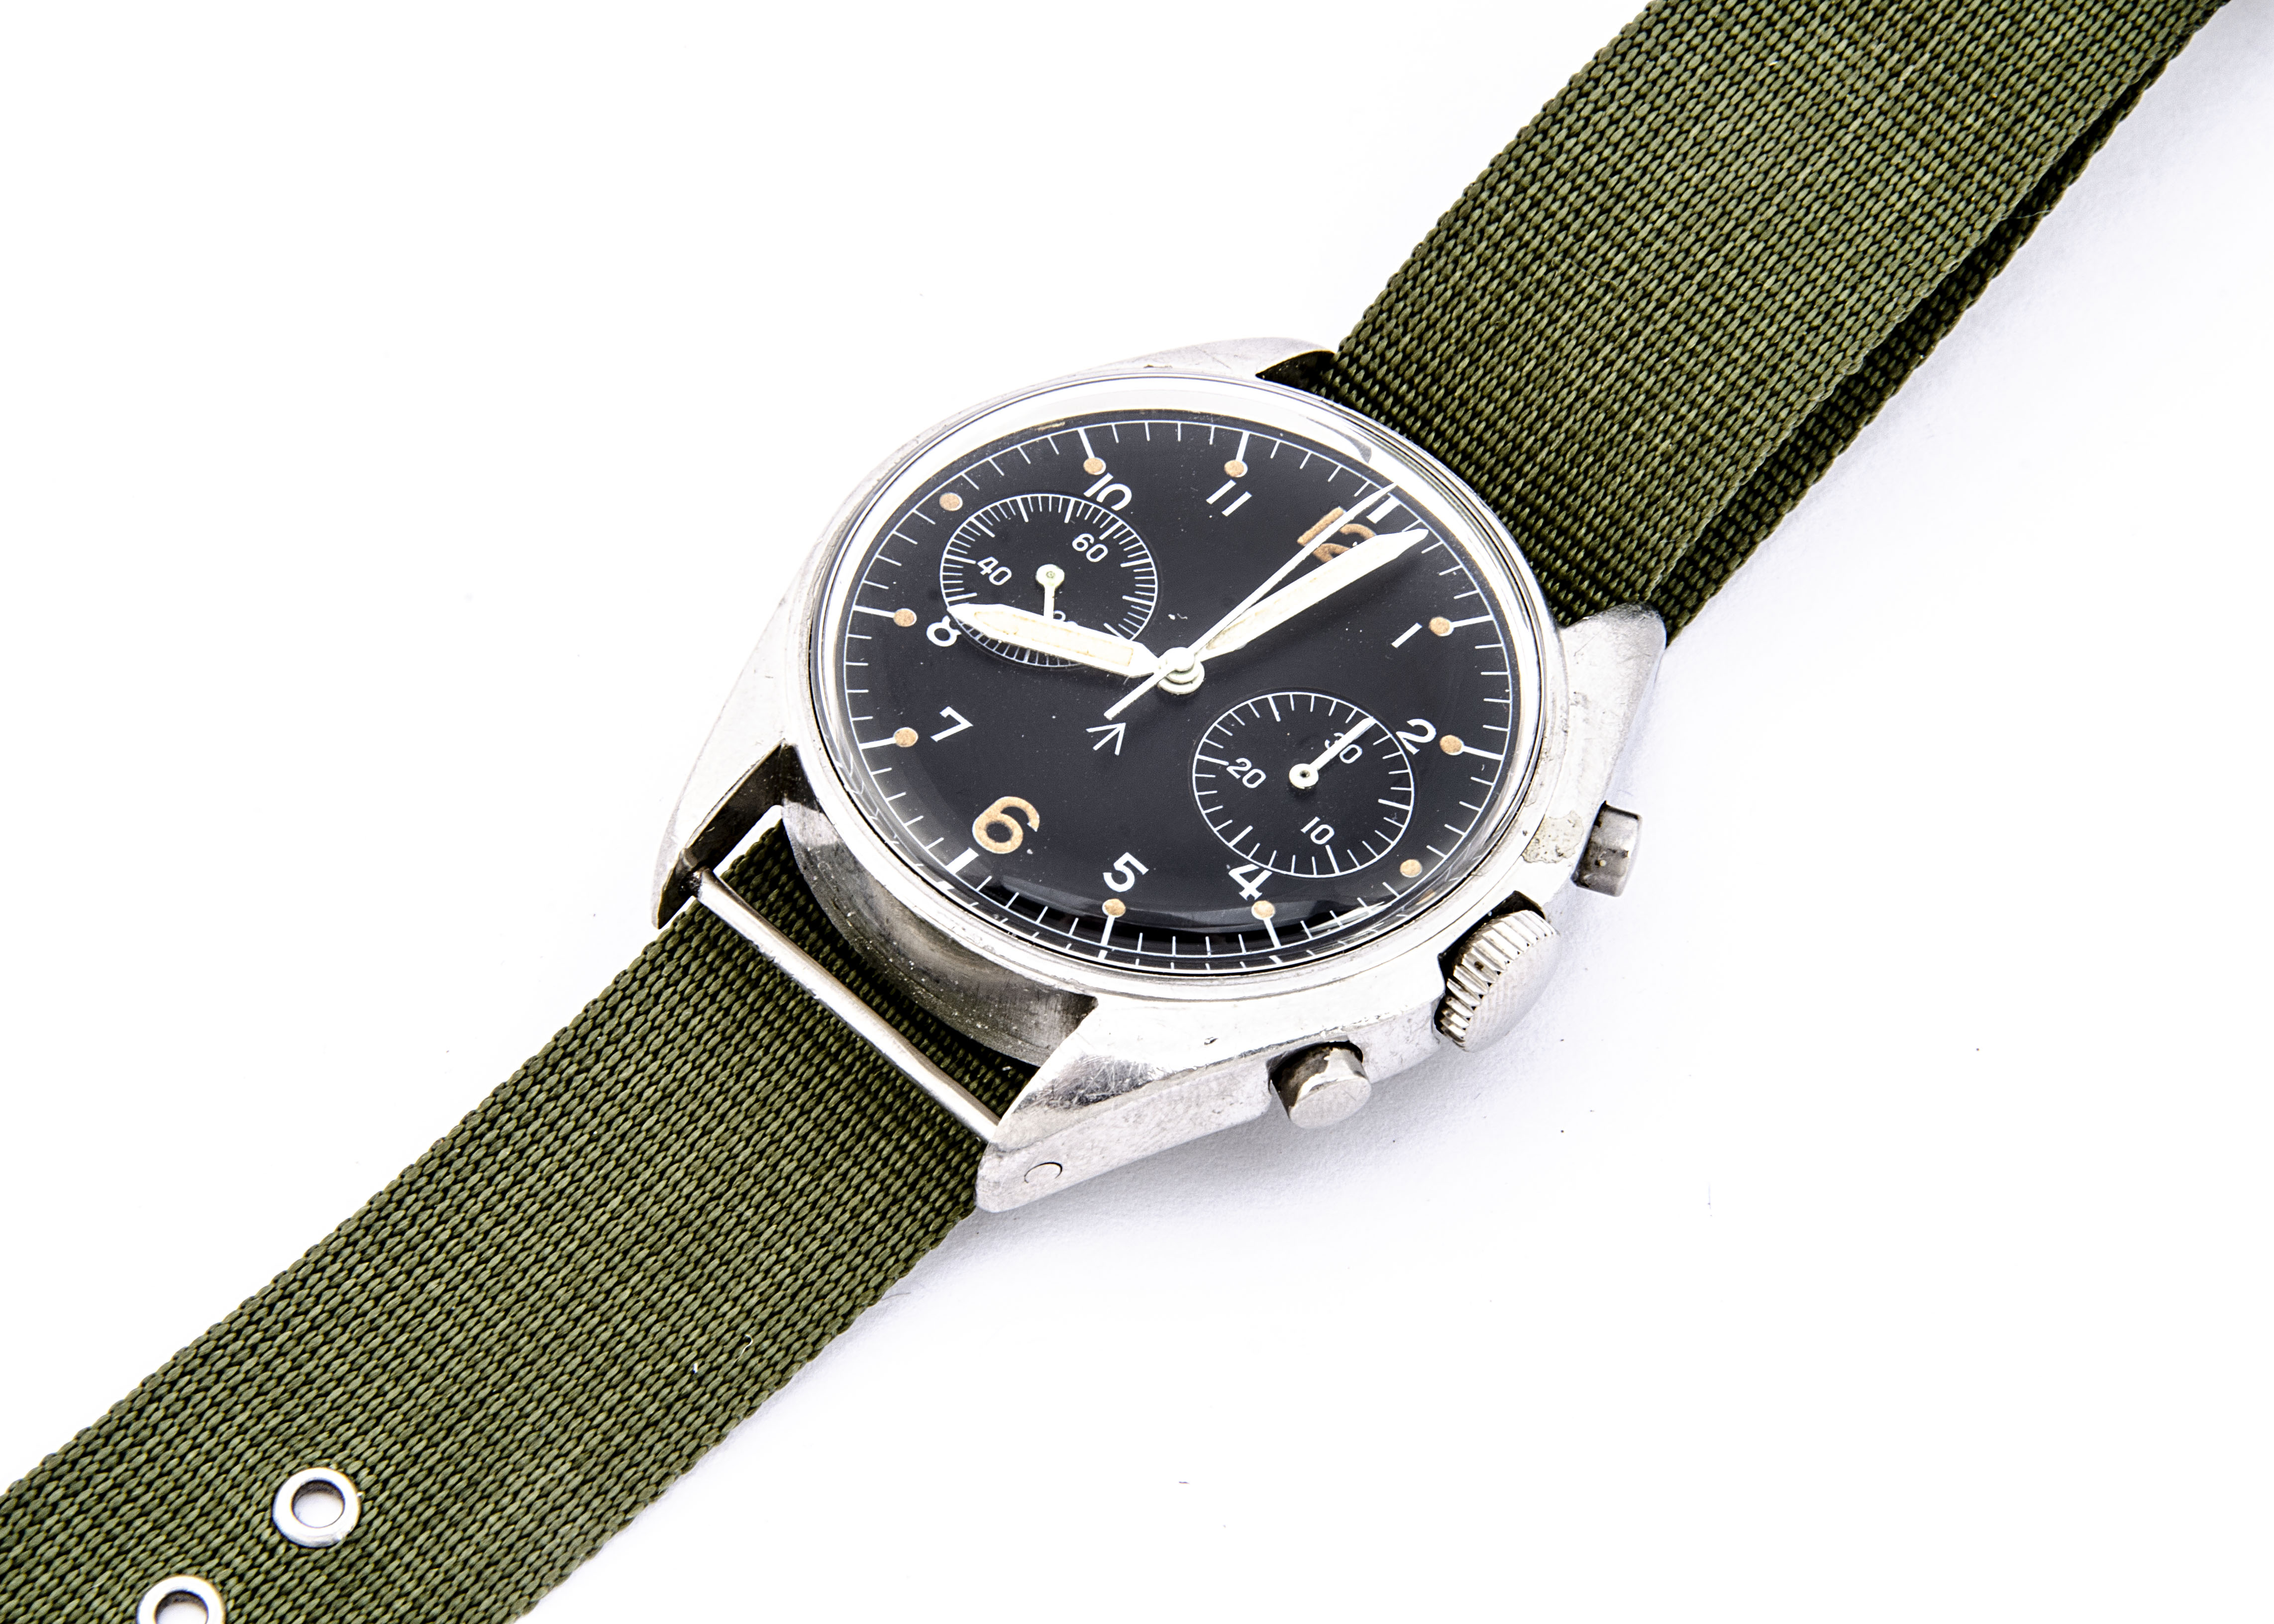 A c1970s Hamilton two button chronograph Royal Air Force stainless steel wristwatch, 38mm case,